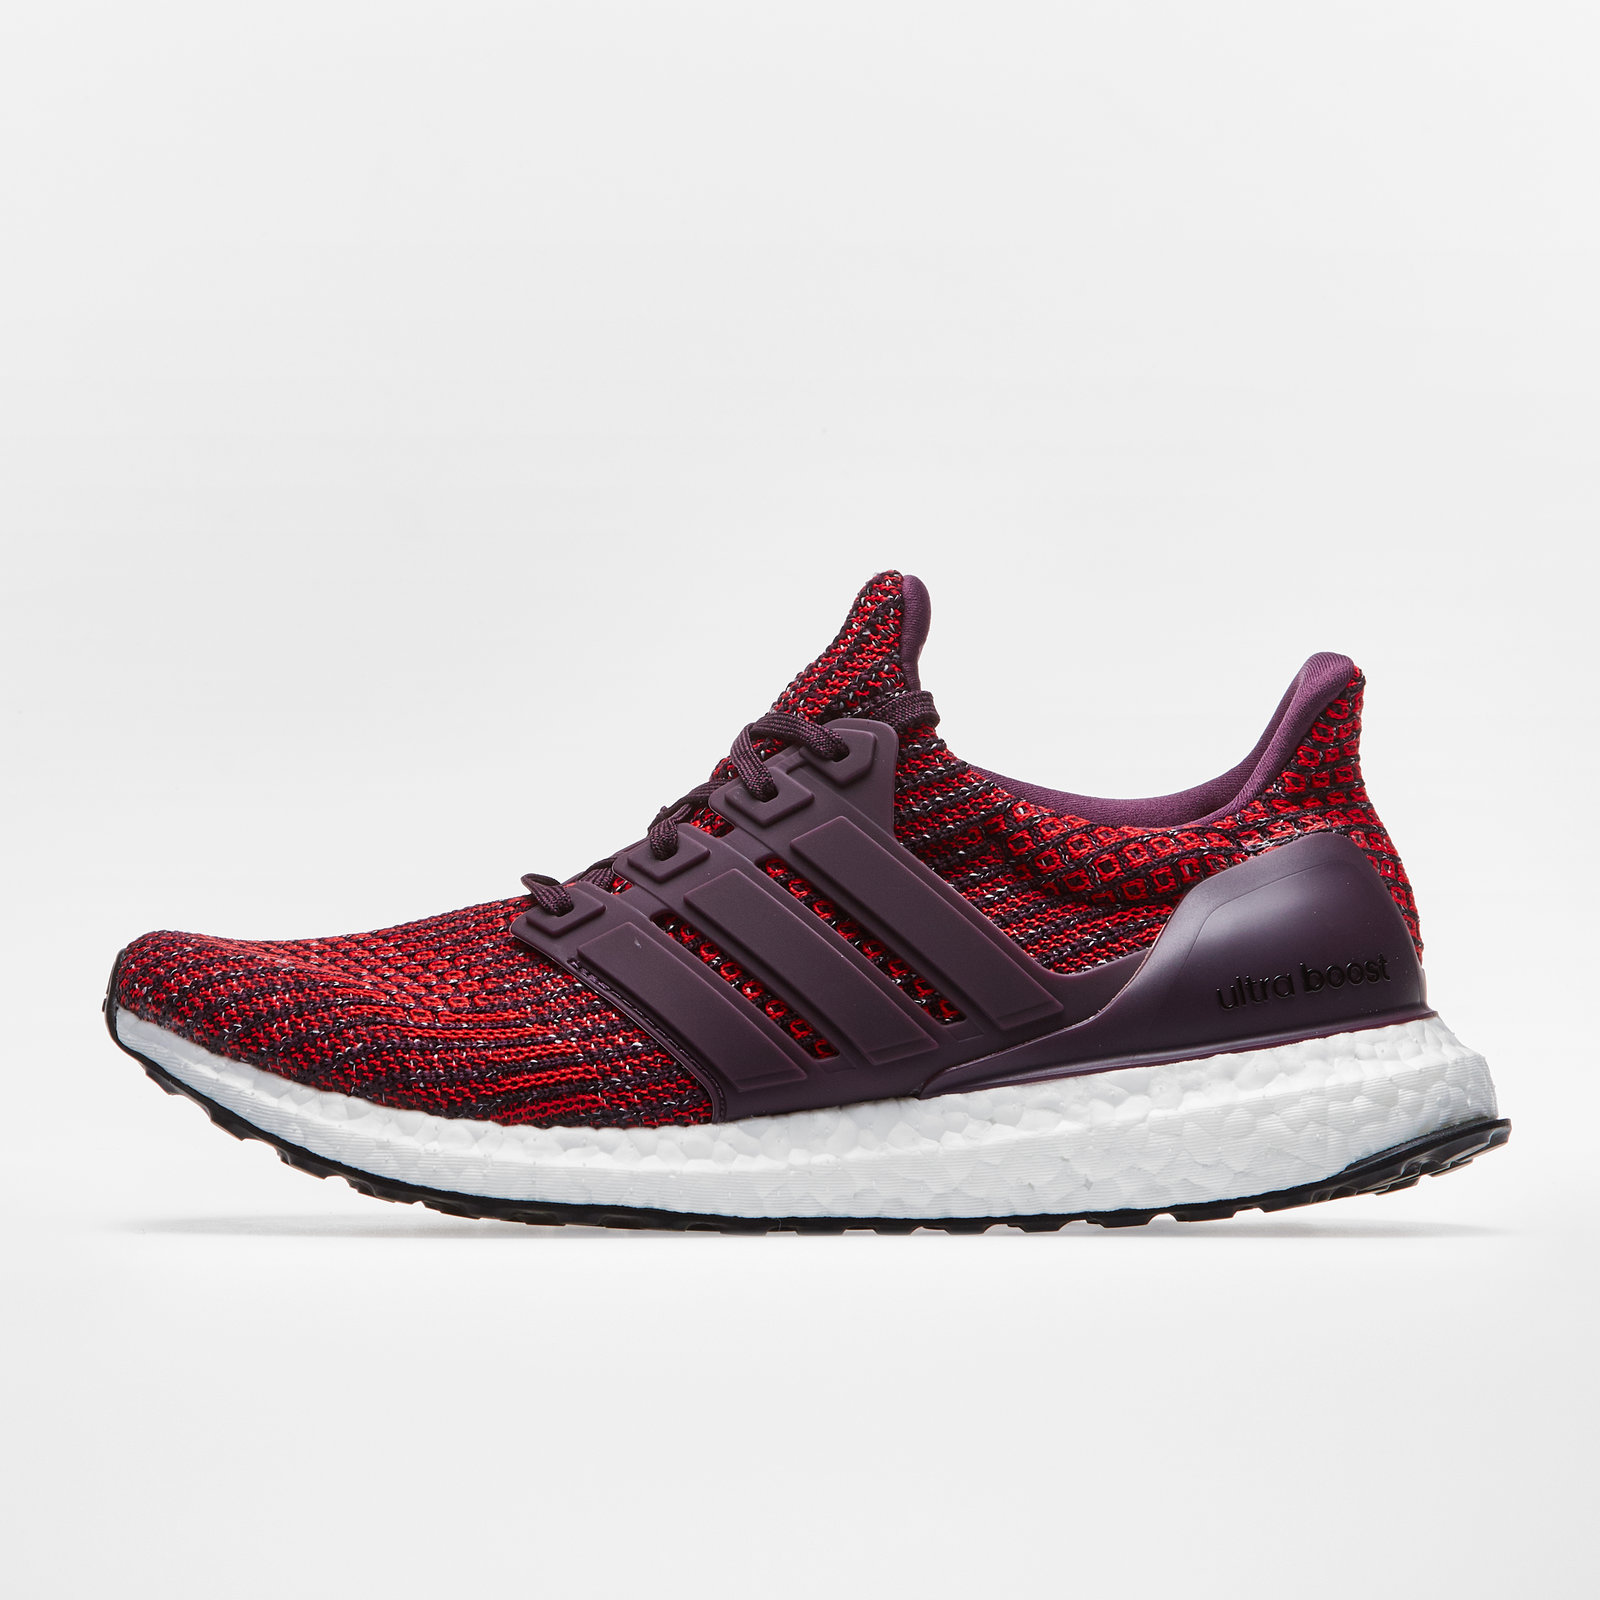 new arrival 8d720 f5040 Image is loading adidas-Mens-Ultra-Boost-4-0-Running-Shoes-